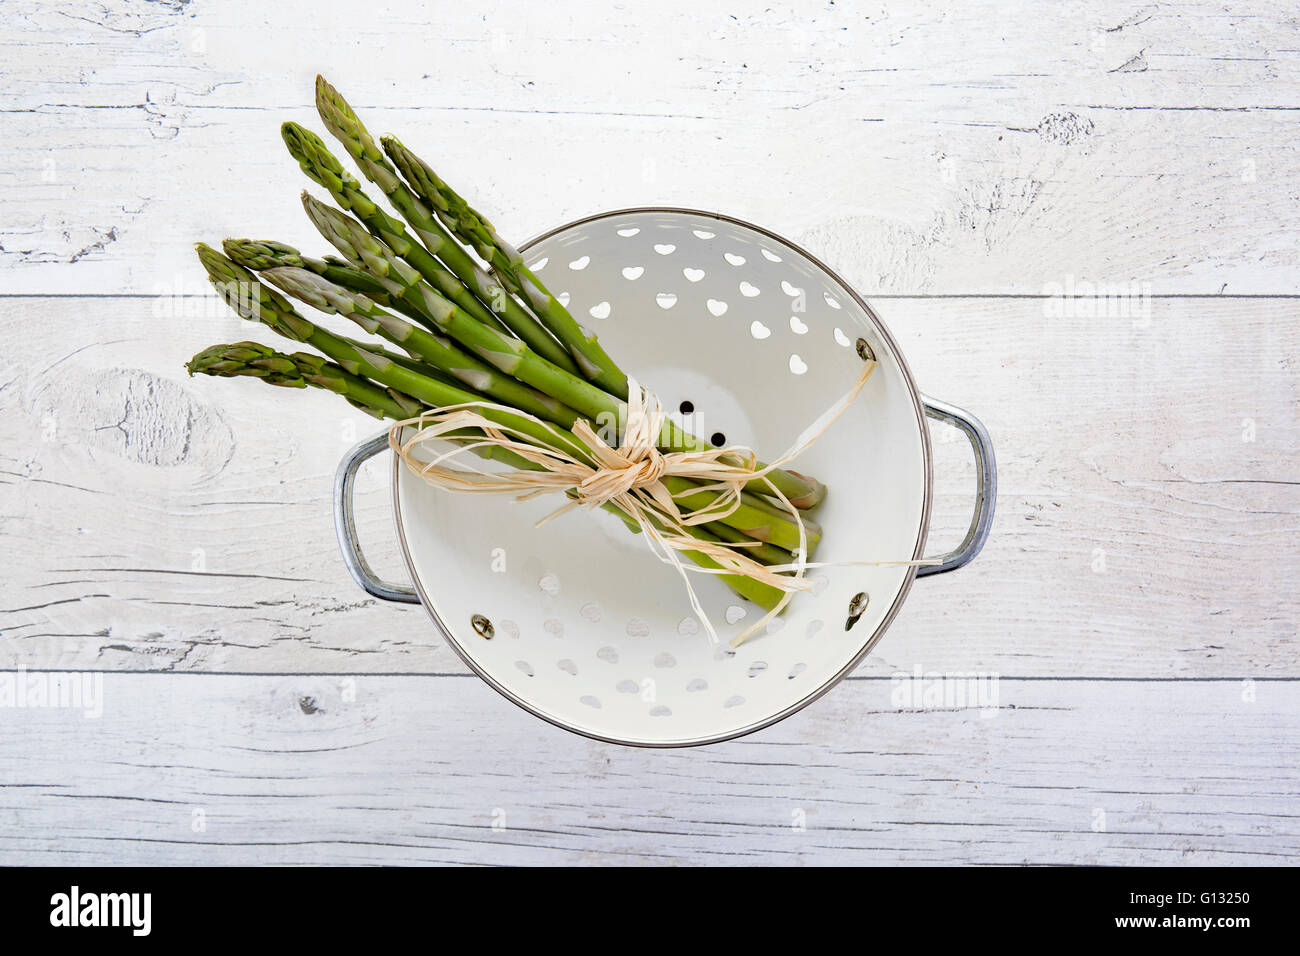 Fresh green asparagus in colander on old wooden background Stock Photo